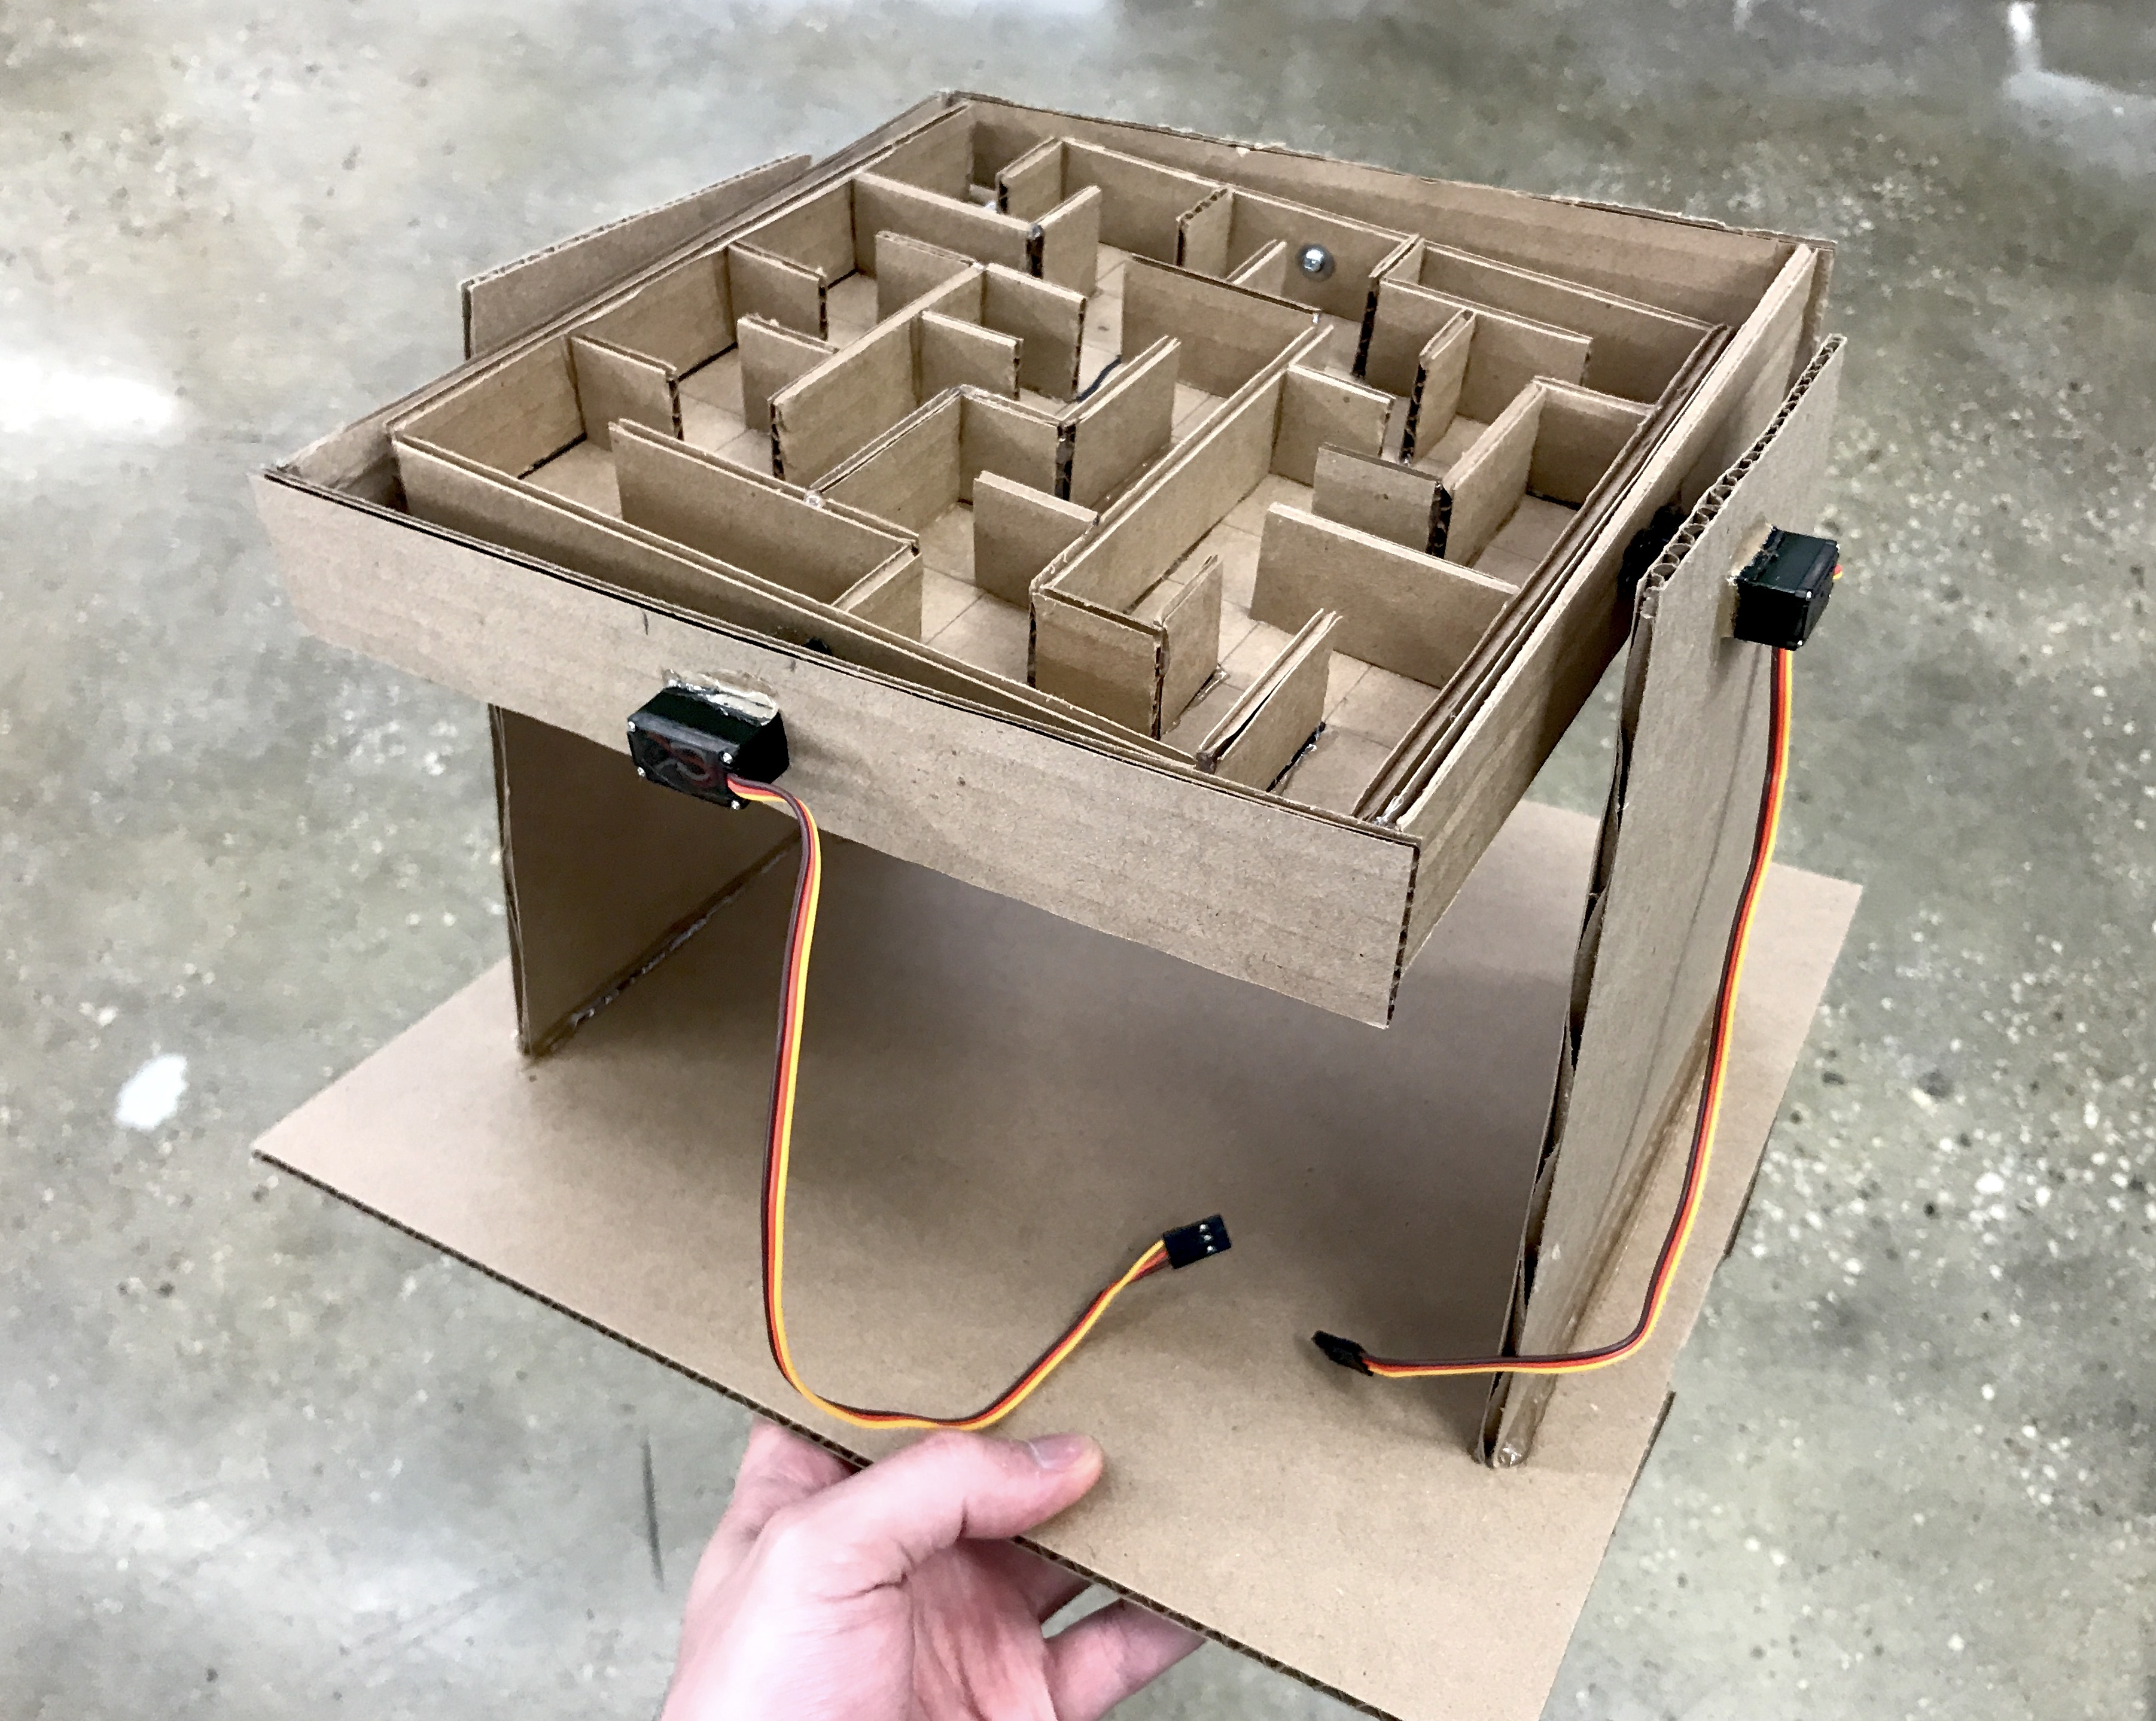 circuit_playground_projects_IMG_5137.jpg